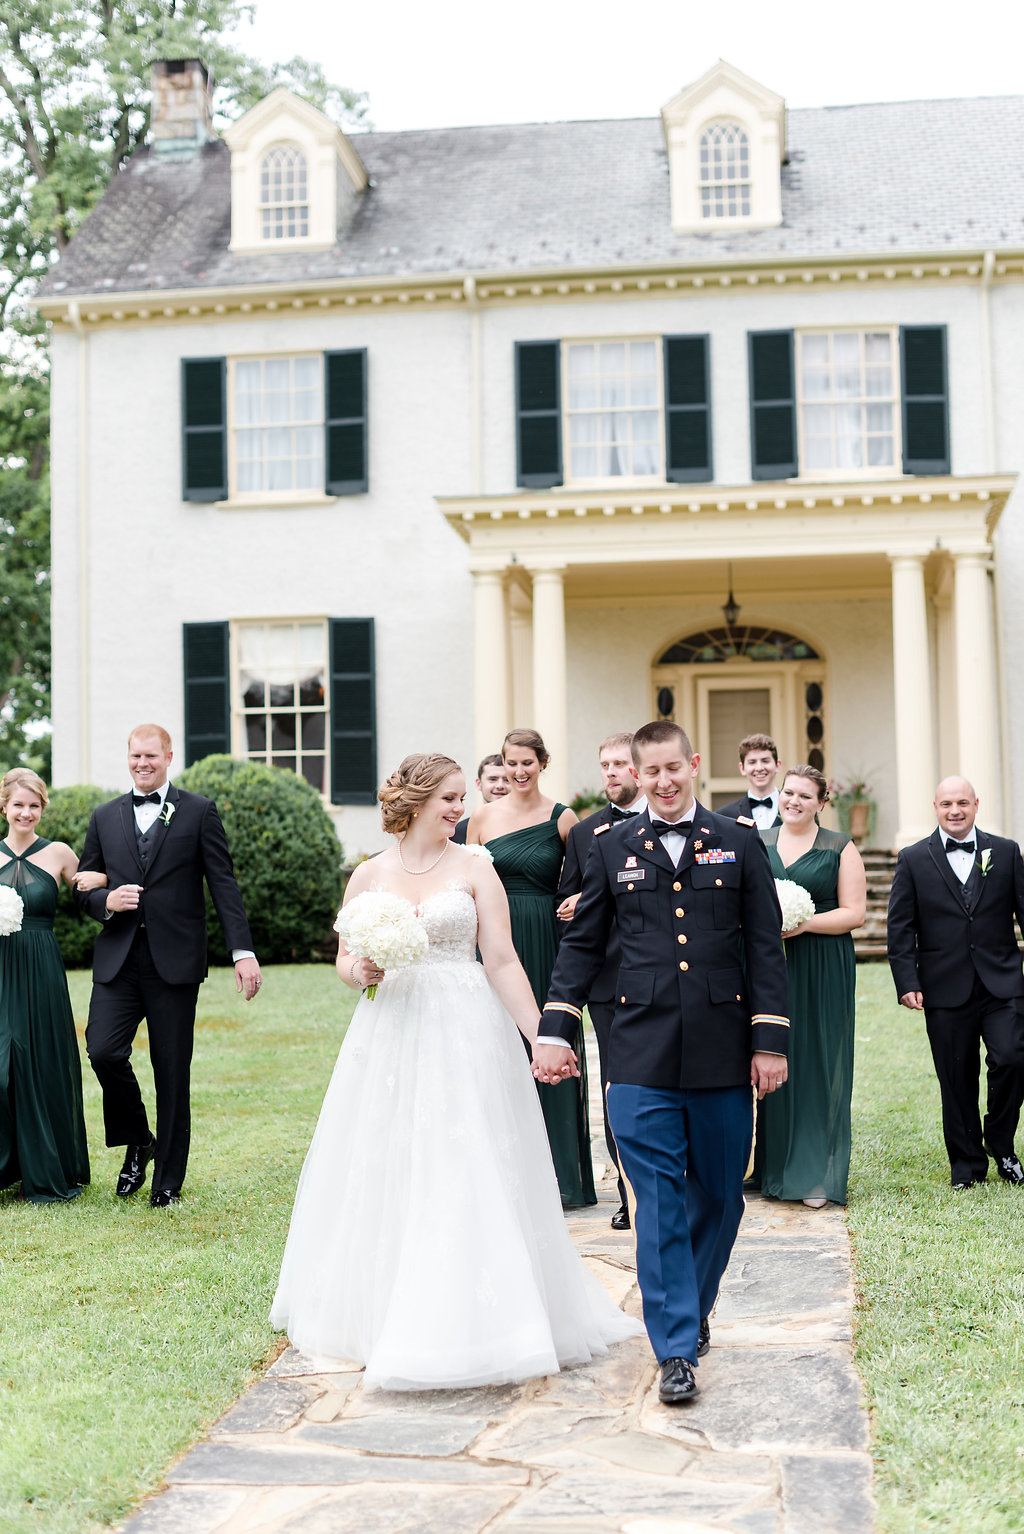 A Classic Rust Manor House Virginia Wedding - The Overwhelmed Bride Wedding BlogA Classic Rust Manor House Virginia Wedding - The Overwhelmed Bride Wedding Blog